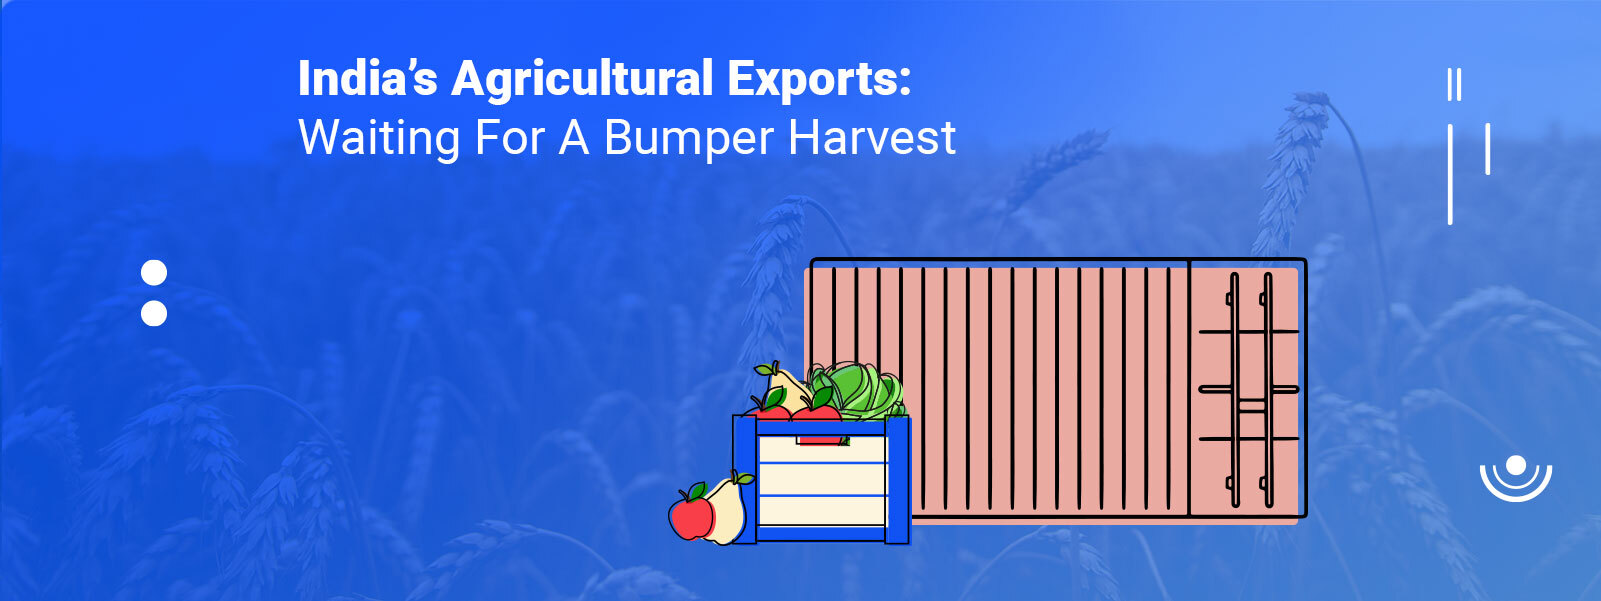 India's Agricultural Exports: Waiting For A Bumper Harvest